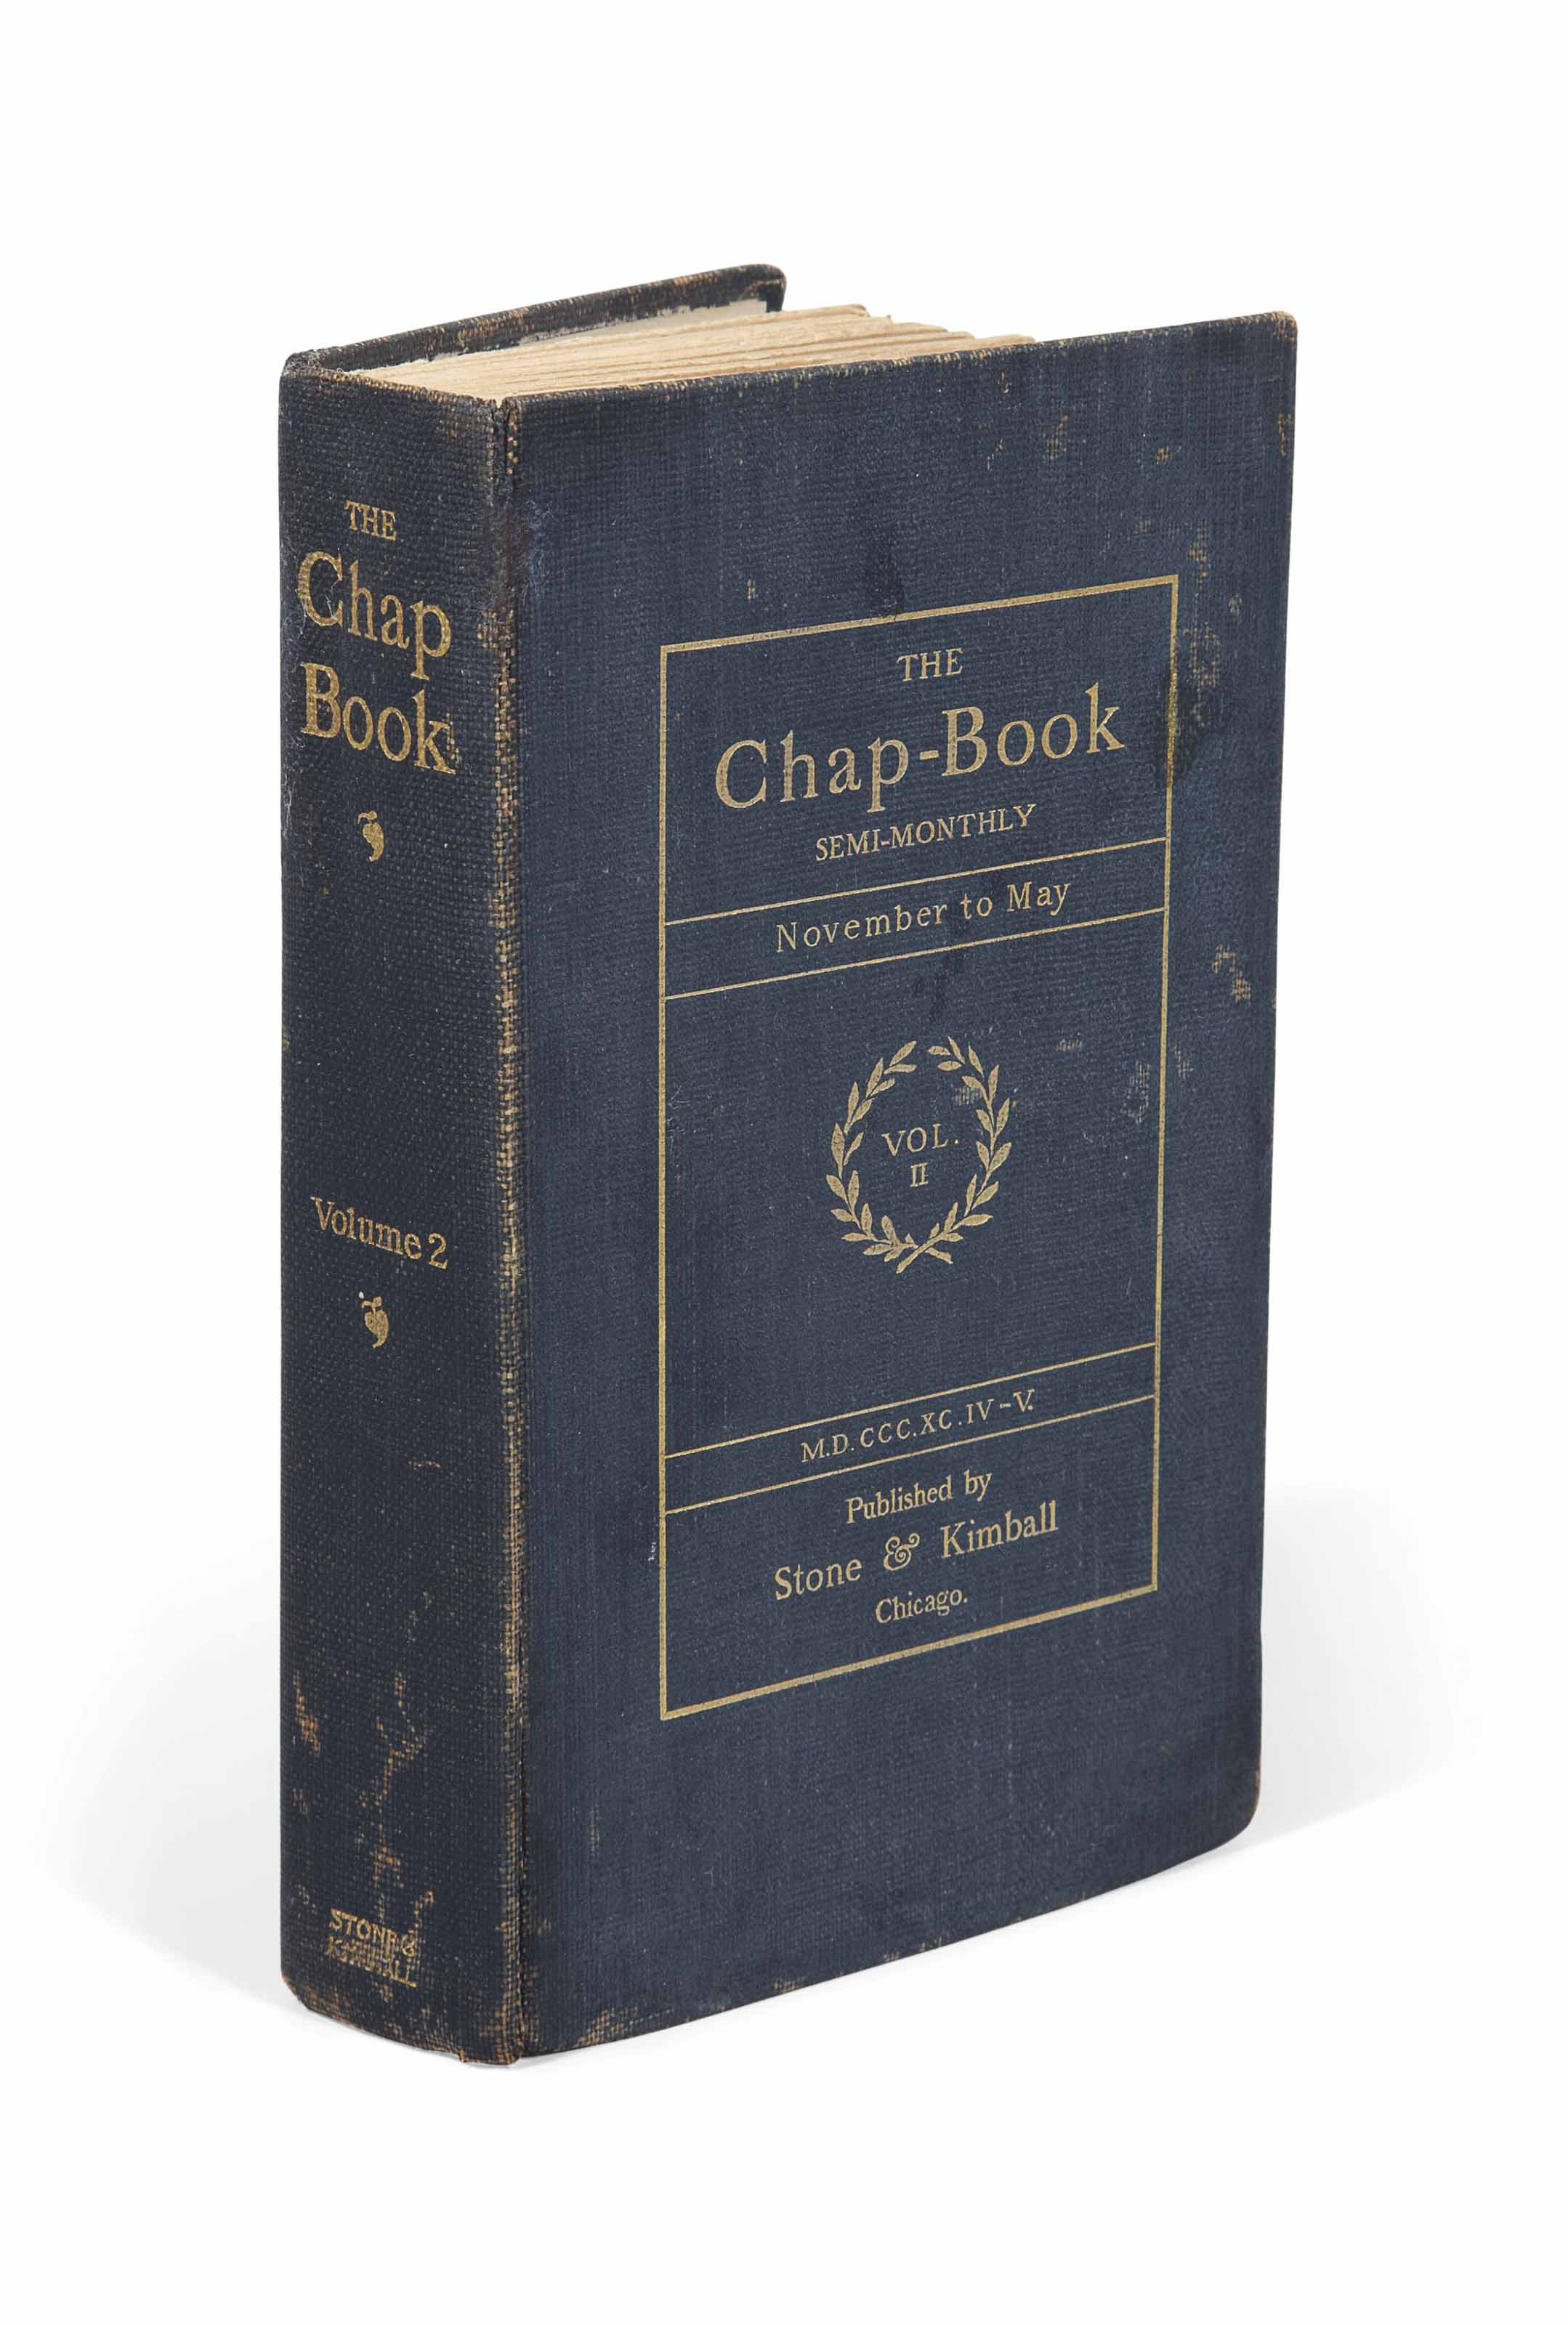 THE CHAP-BOOK. Semi-monthly. I